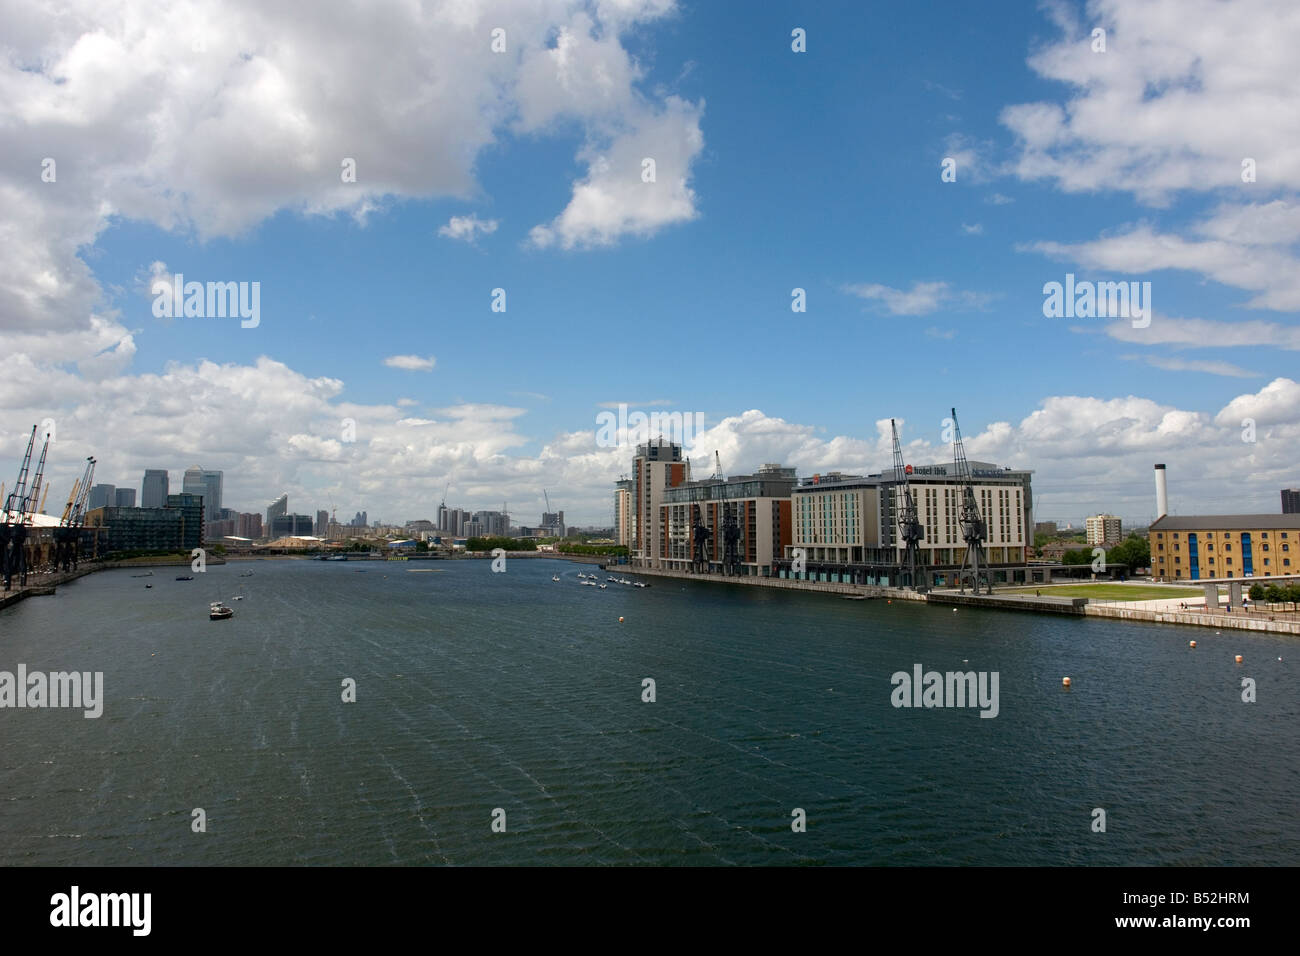 the Royal Victoria Dock - Silvertown - East London - UK - Stock Image